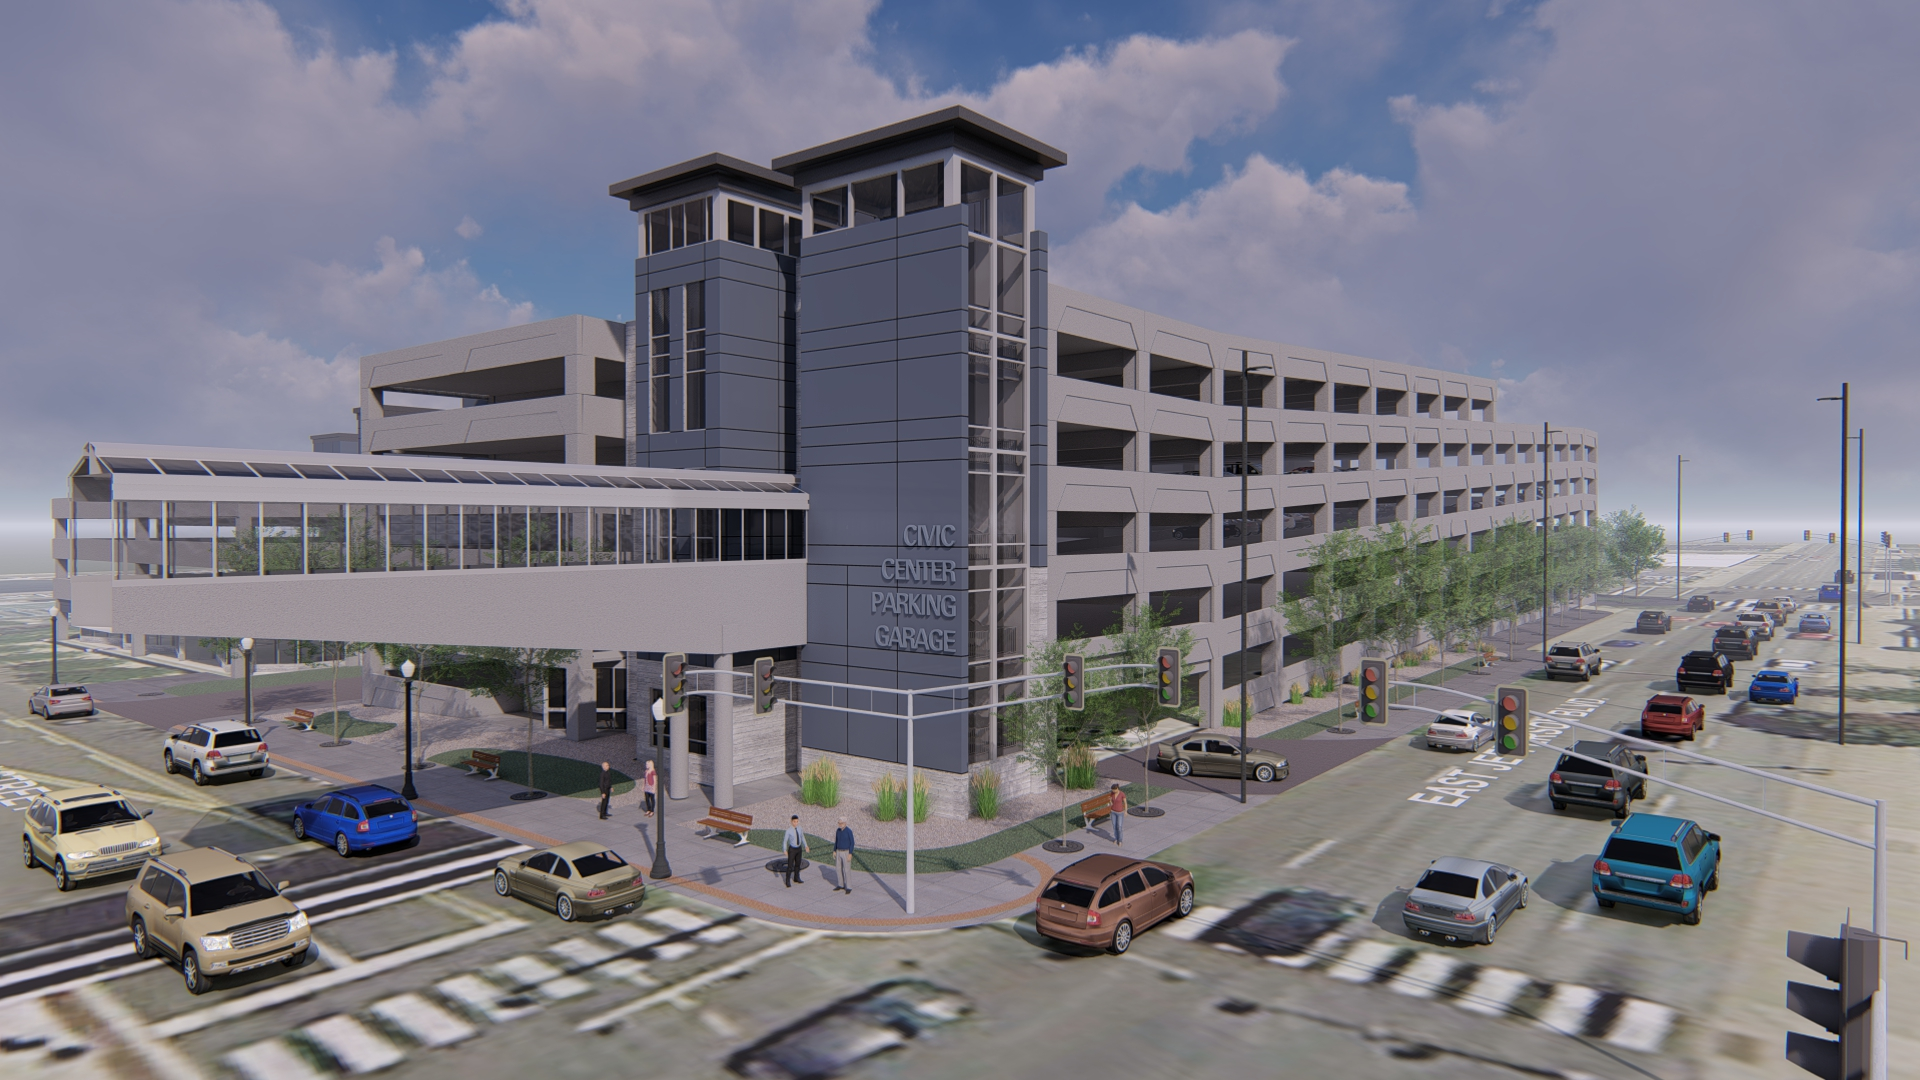 image of a parking garage rendering